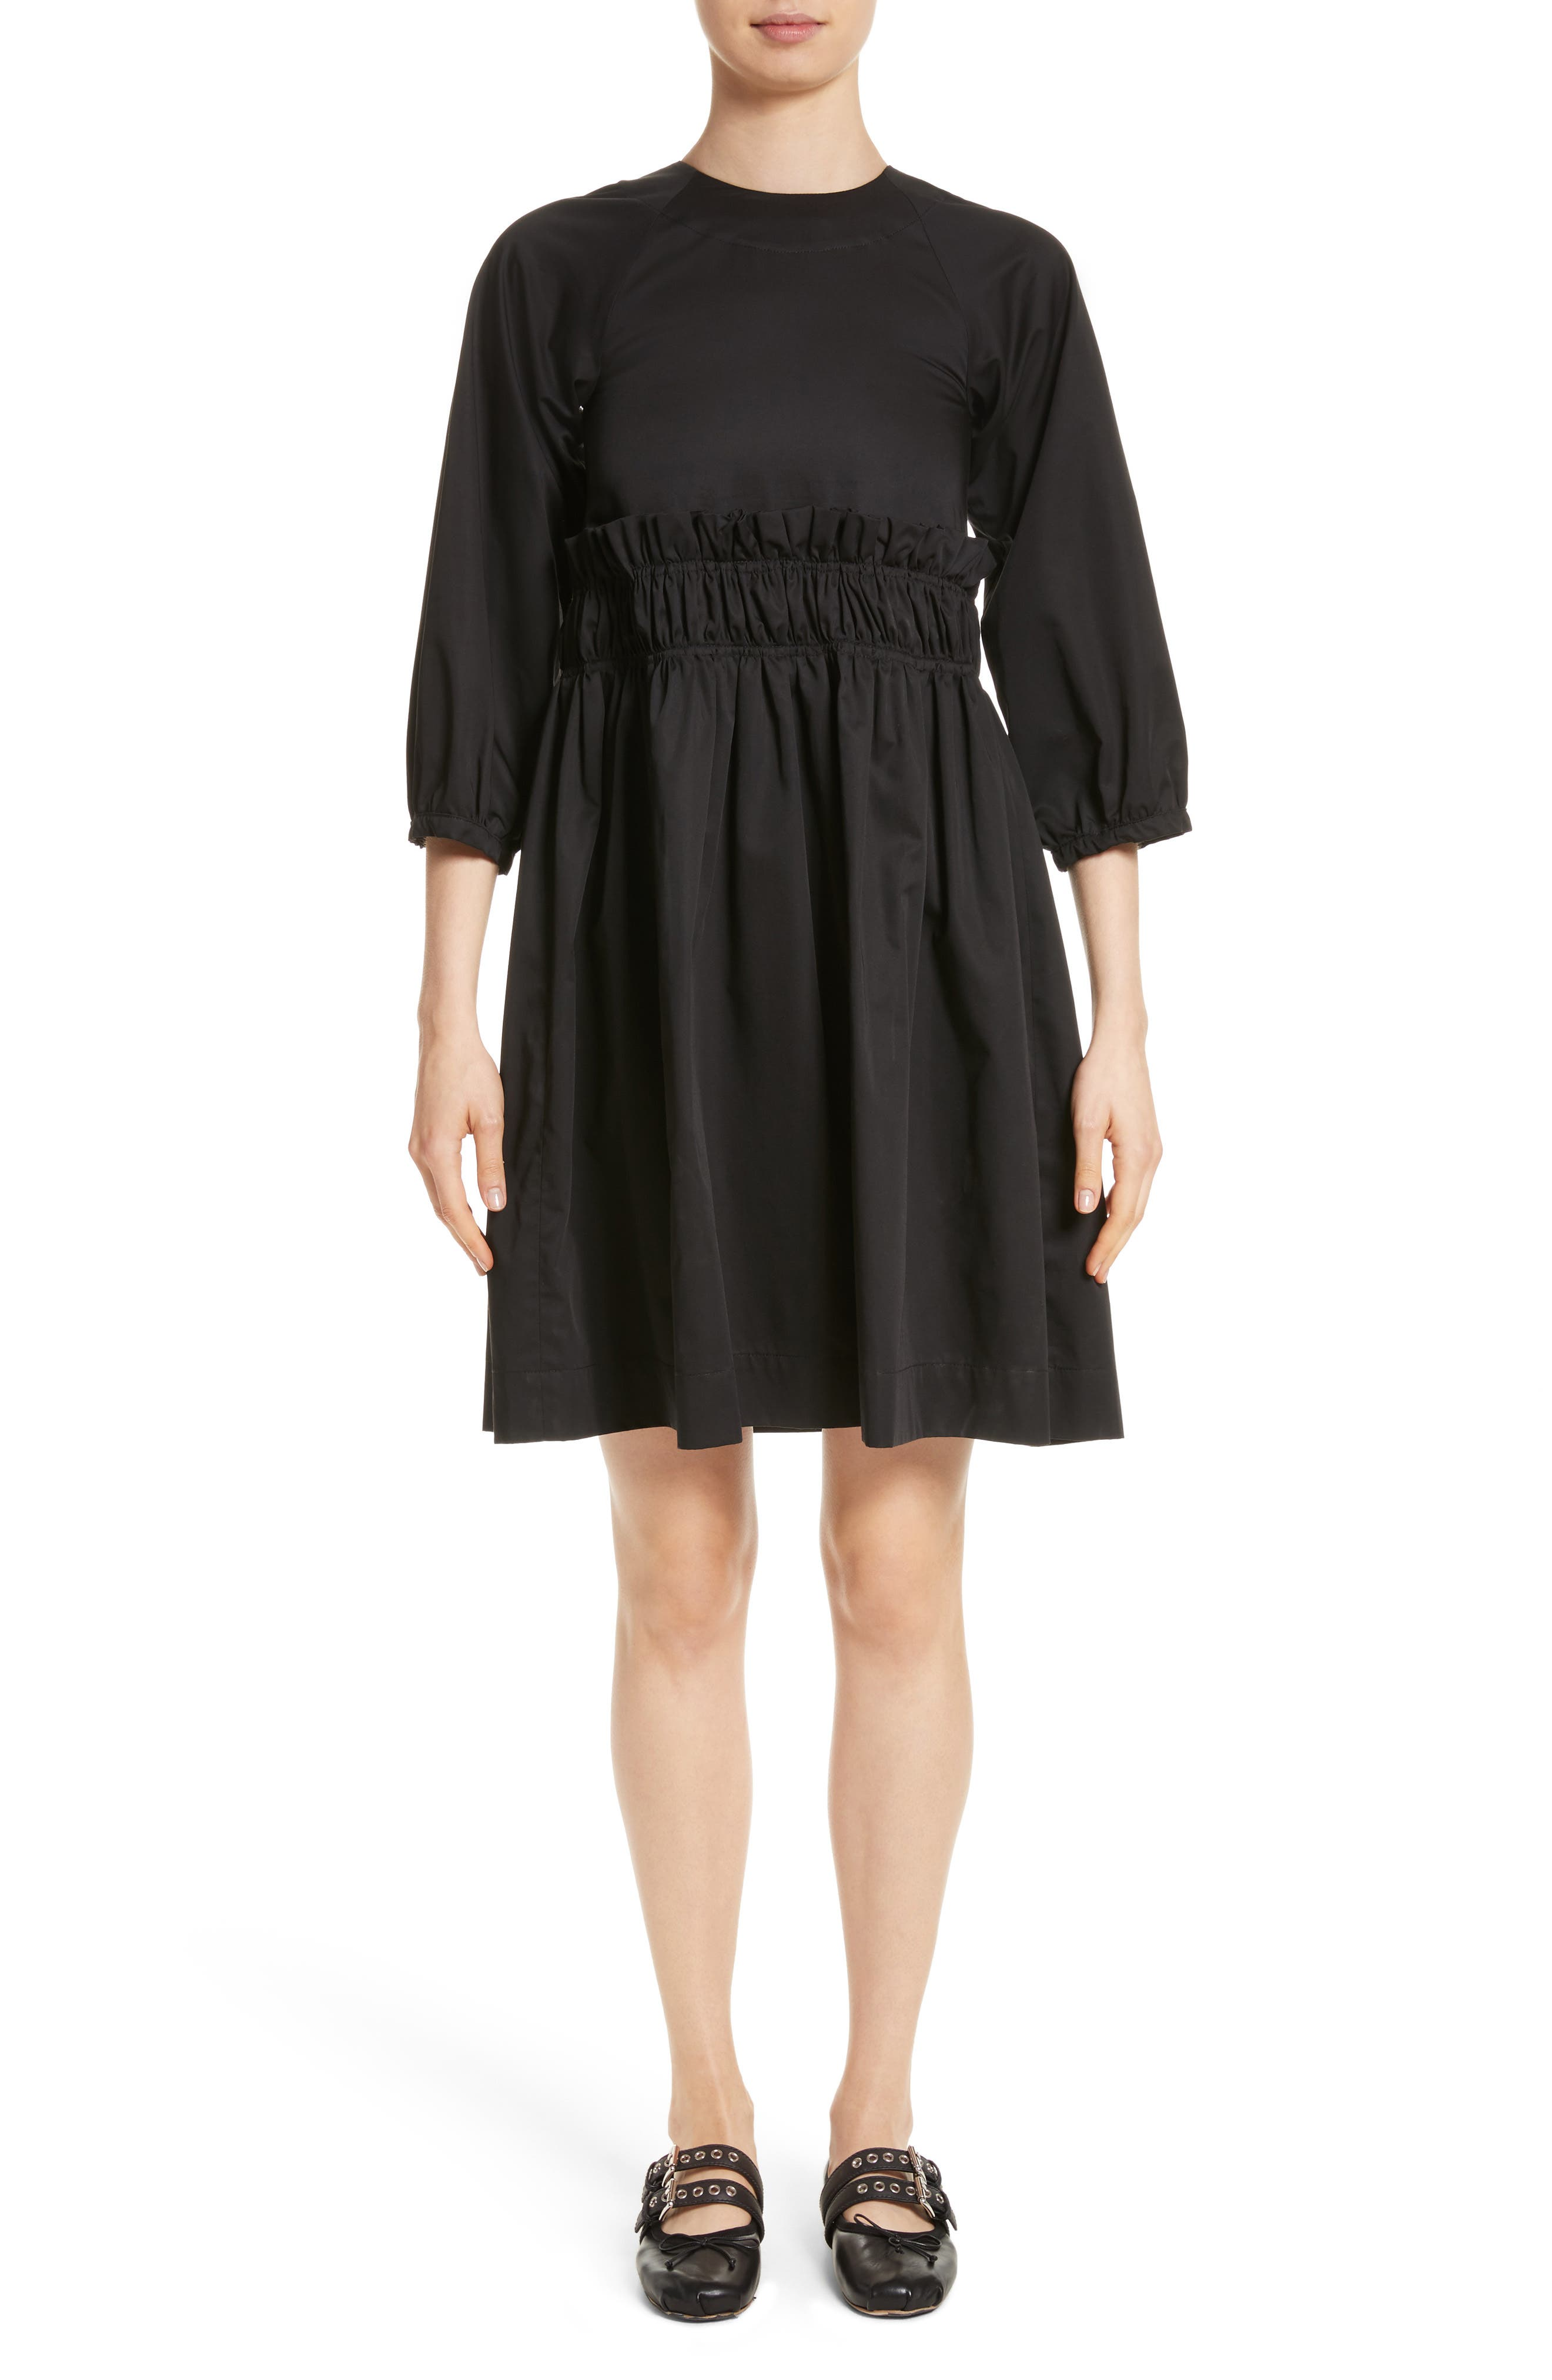 Blake Dress,                             Main thumbnail 1, color,                             Black